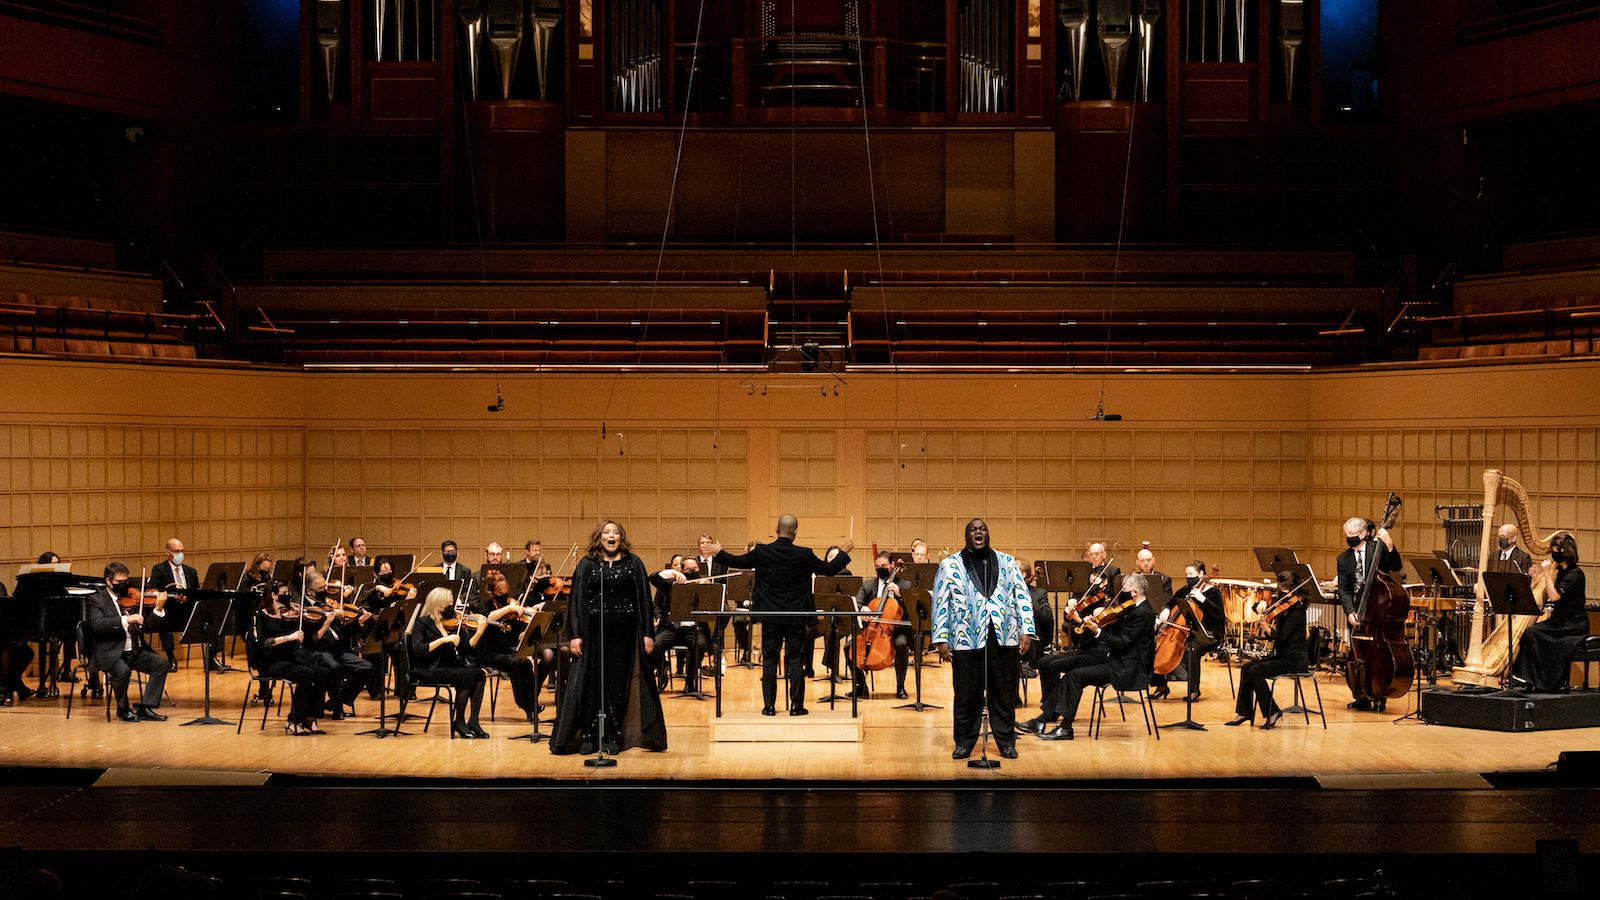 On Nov. 11, the DSO and Dallas Black Dance Theatre staged the Unity Concert in support of Project Unity, honoring those who have lost their lives to racial violence and injustice.